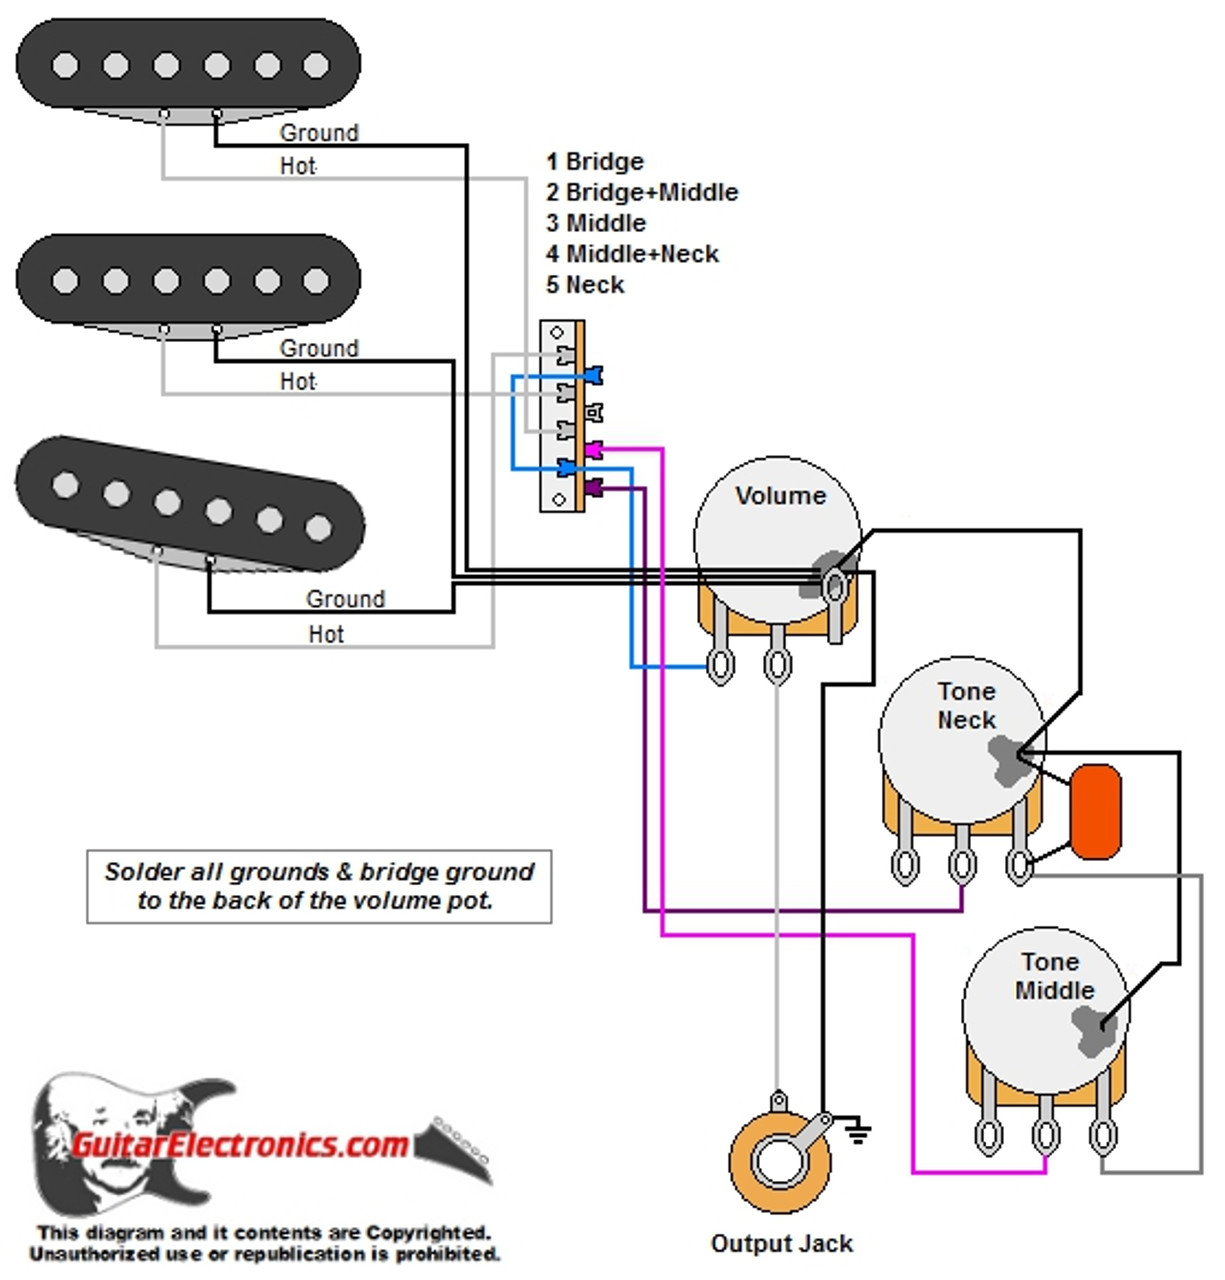 Fender Humbucker Wiring 3 Way Switch Diagram - Wiring ... on